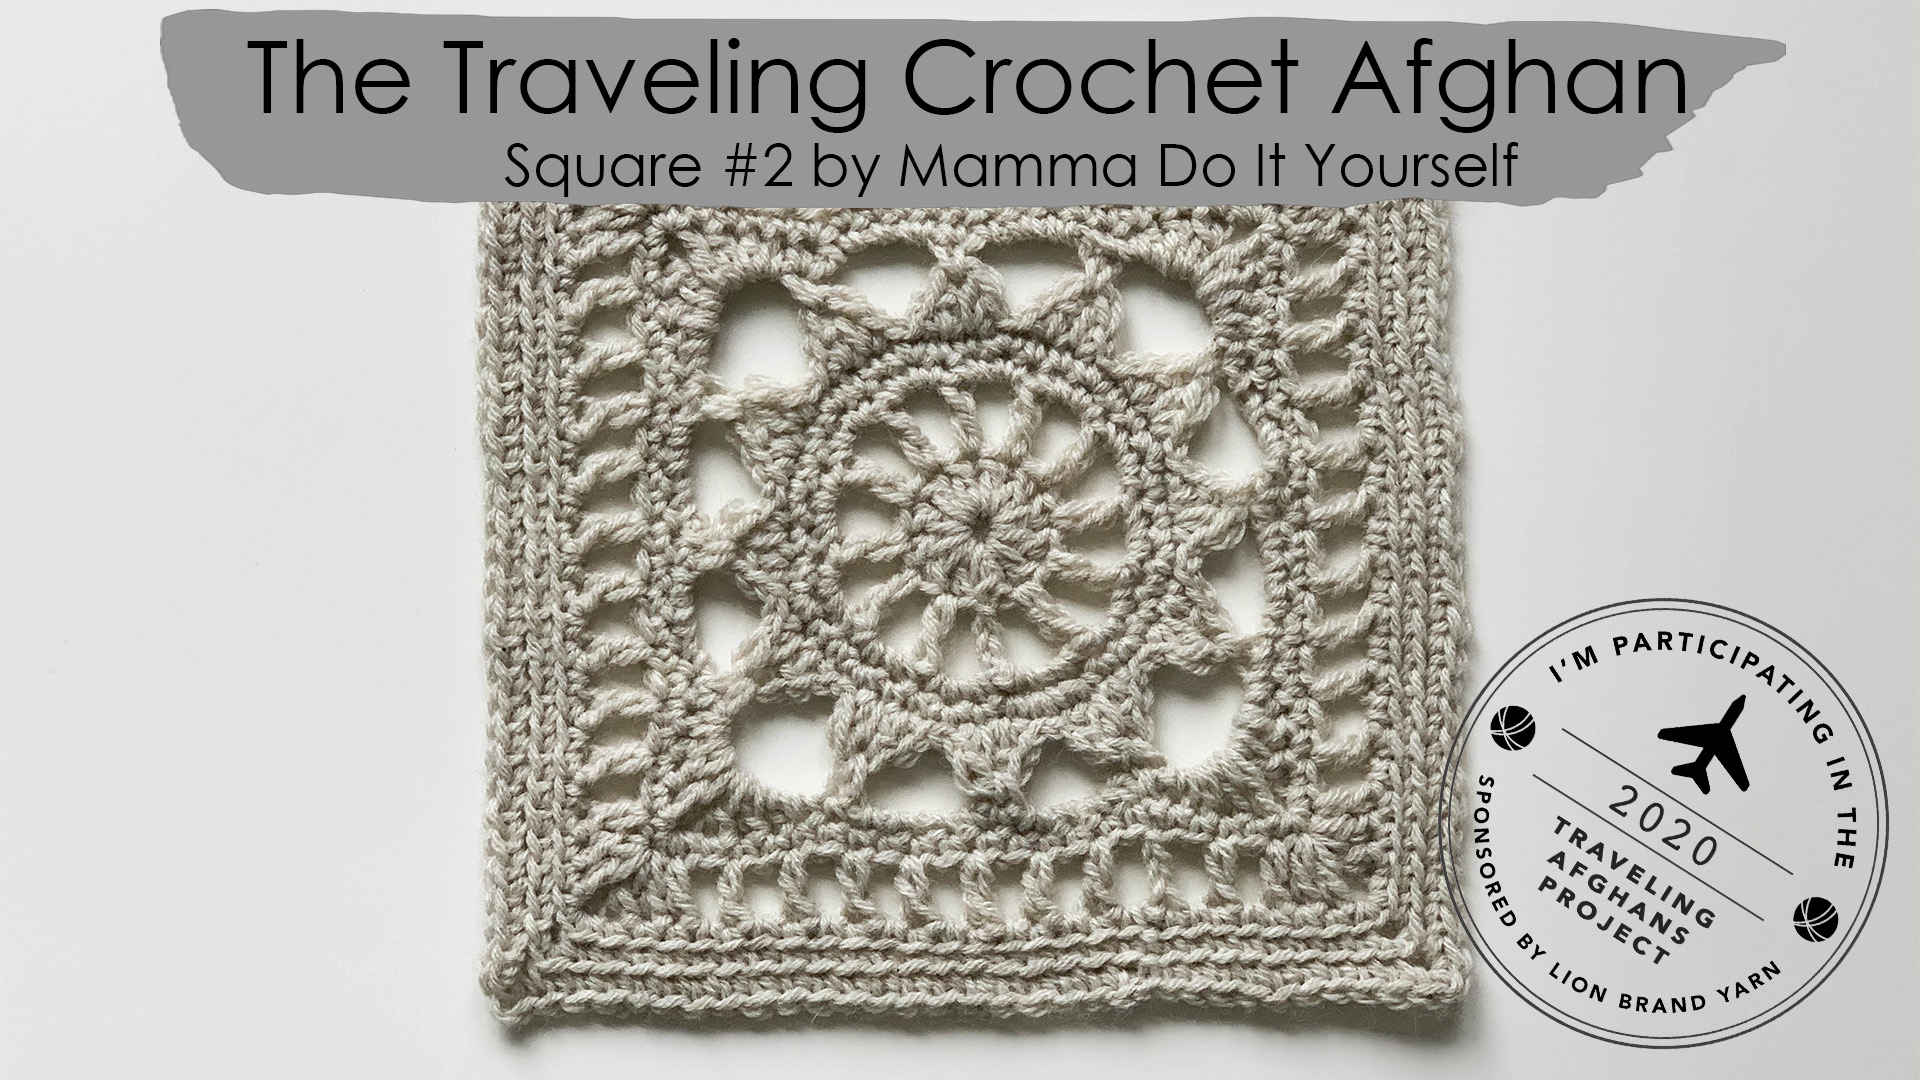 the traveling crochet afghan square #2 by Mamma Do It Yourself